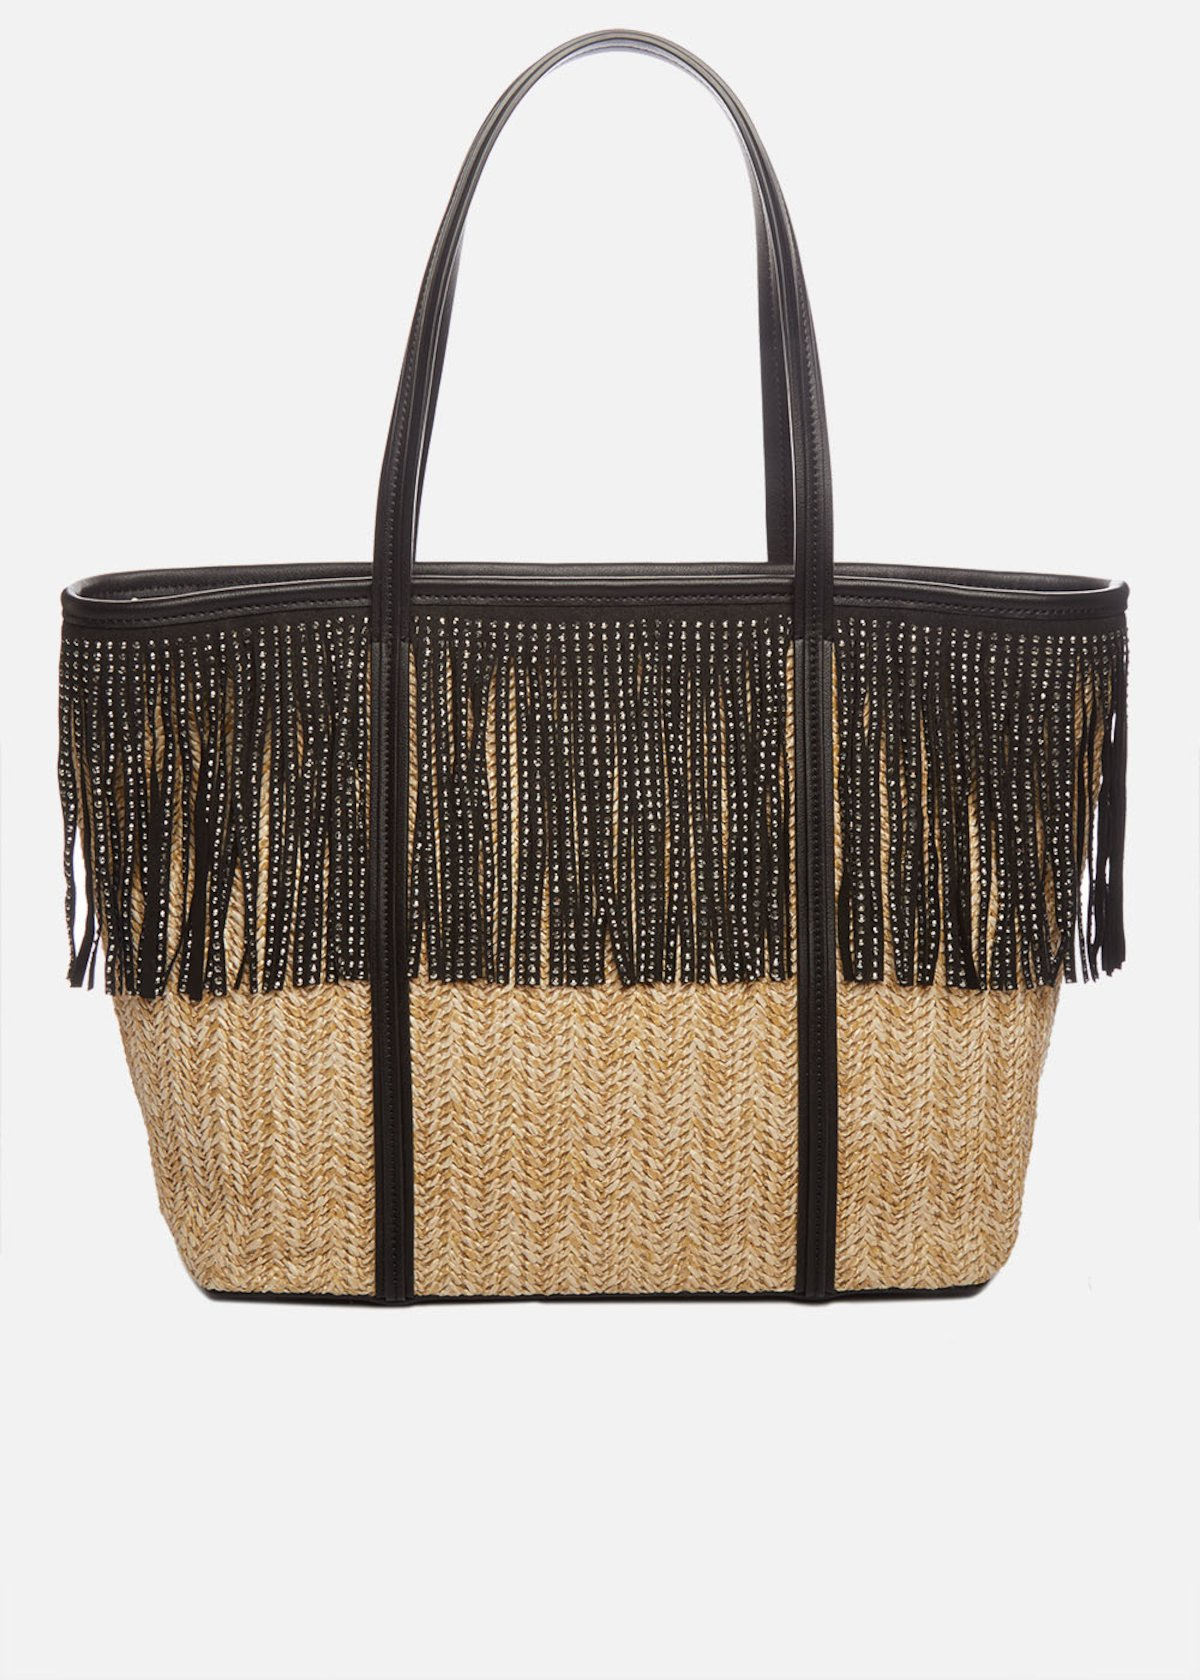 Shopping bag Bradley in raffia con frange di strass e tracolla removibile - Beige / Black